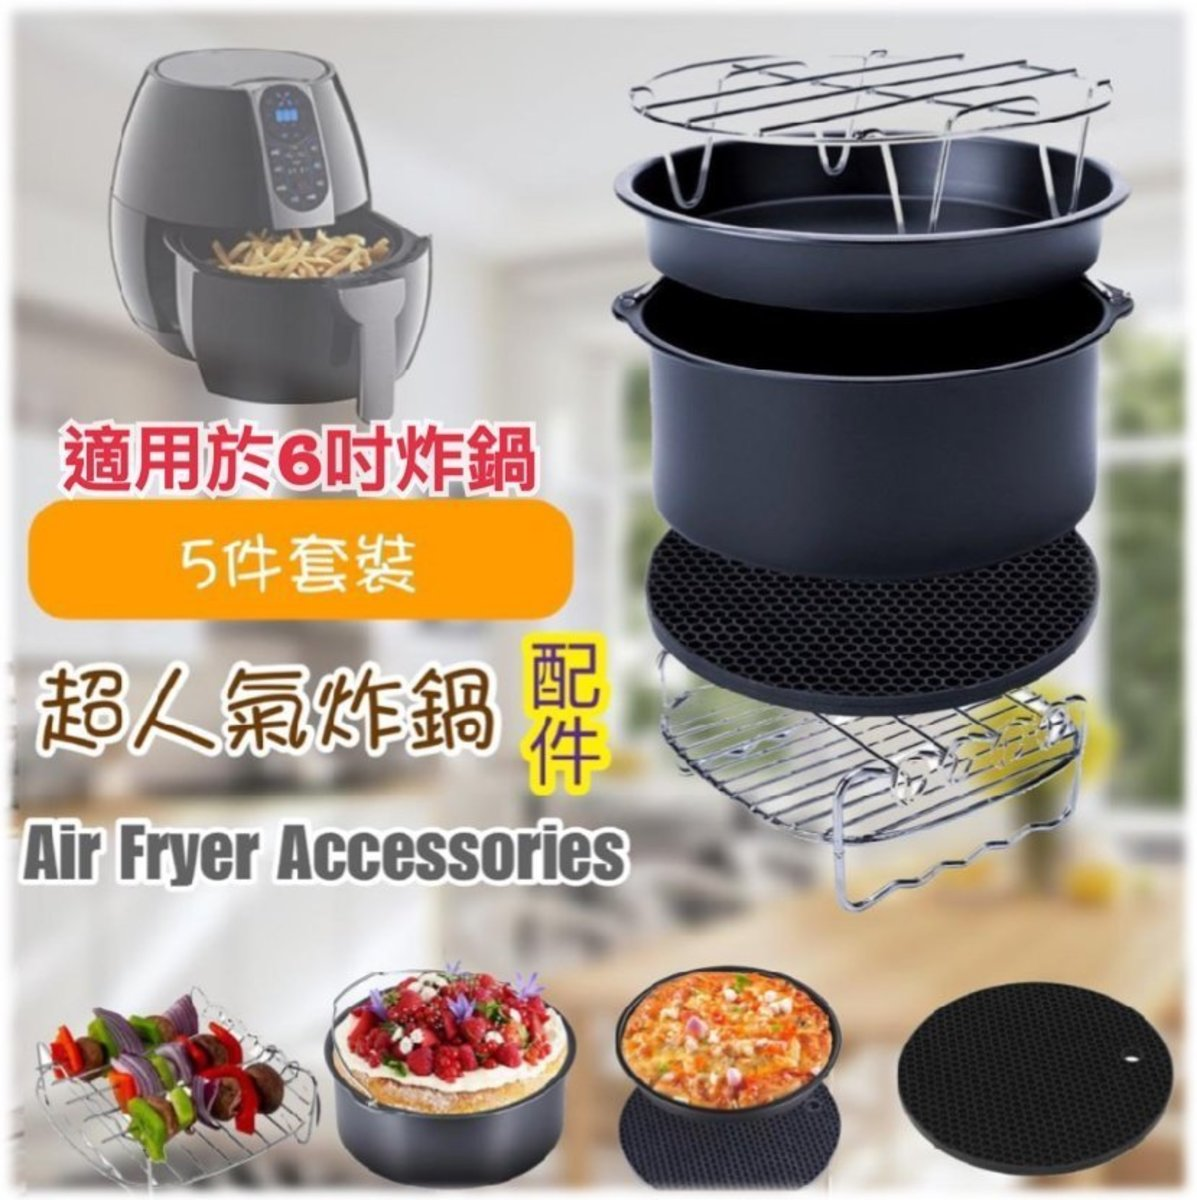 5 pcs/set (6 inches) Air fryer accessories package